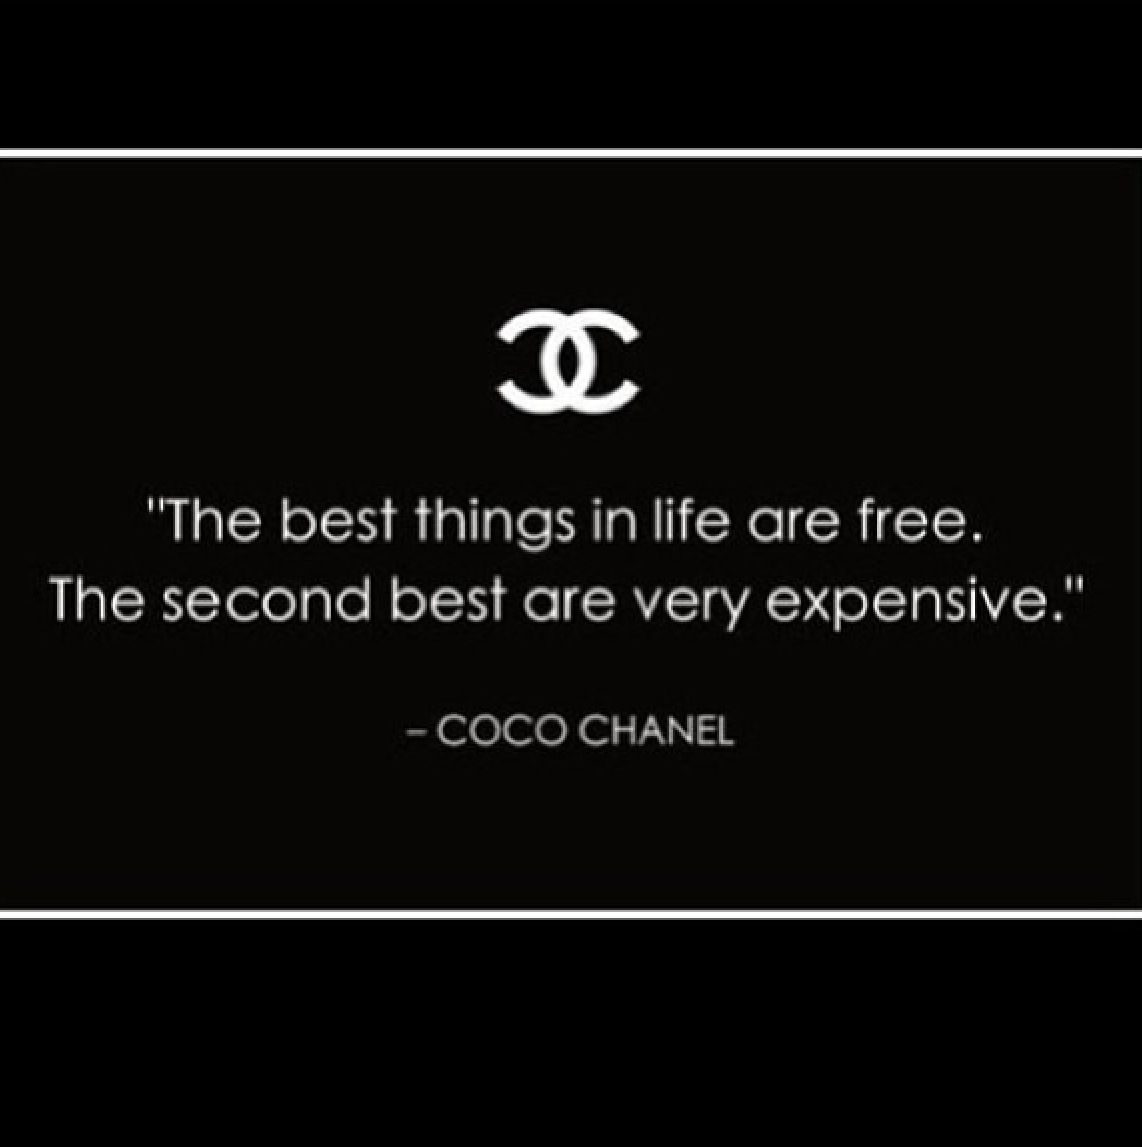 Fashion Quote So True The Best Things In Life According To Coco Chanel